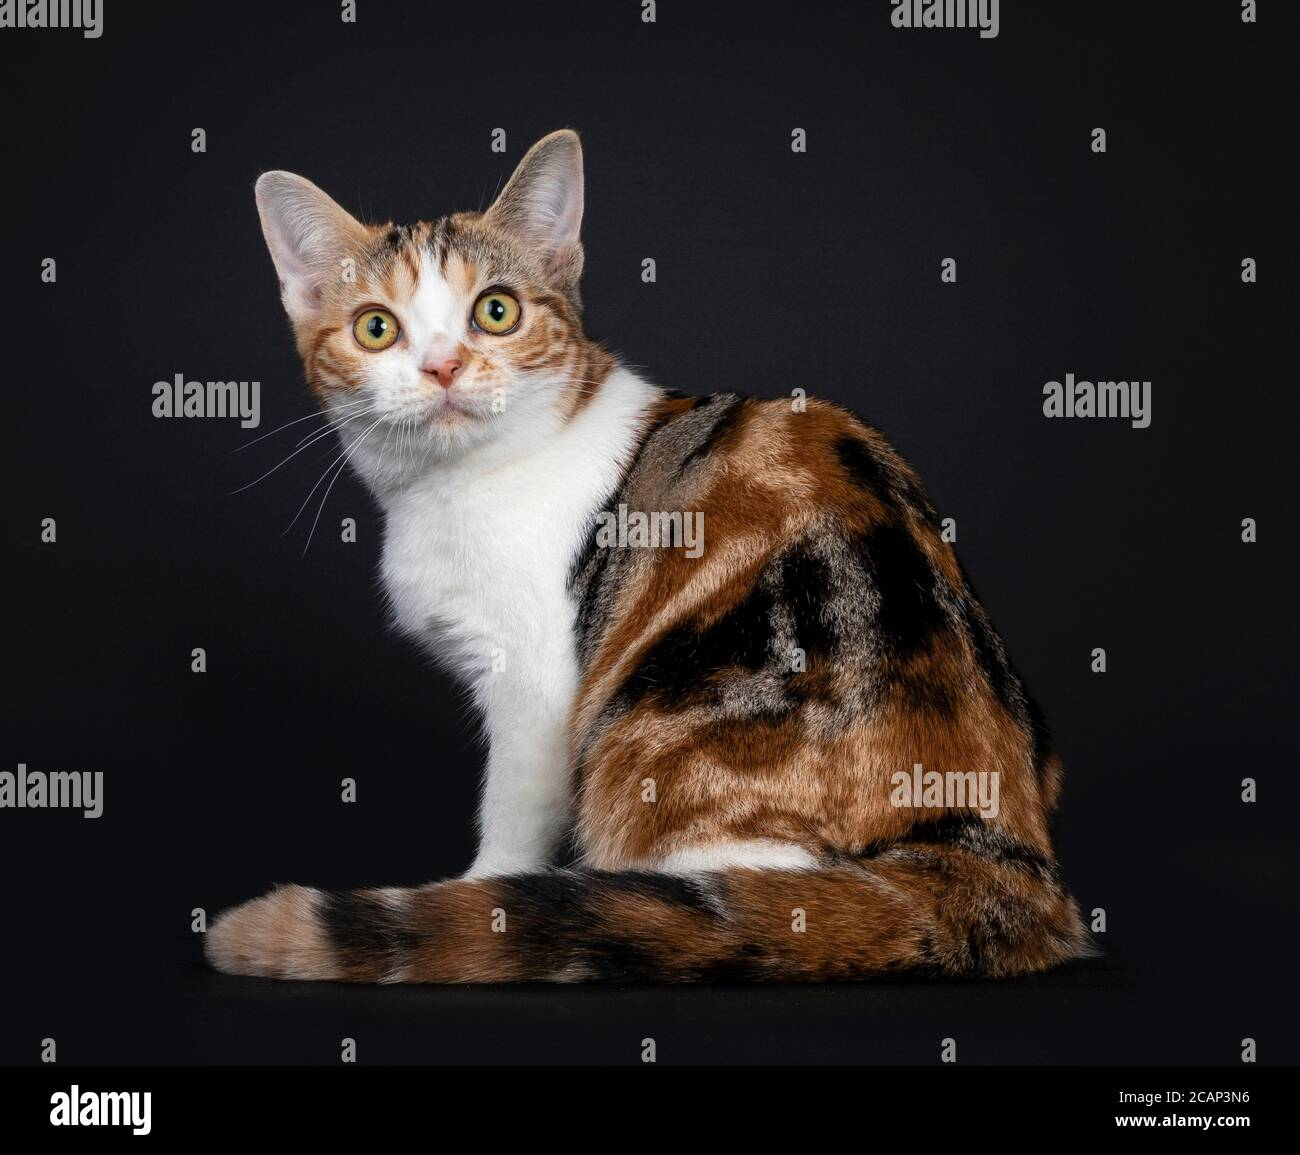 Pretty American Shorthair cat kitten with amazing pattern, sitting backwards. Looking over shoulder straight at camera with yellow eyes. Isolated on b Stock Photo